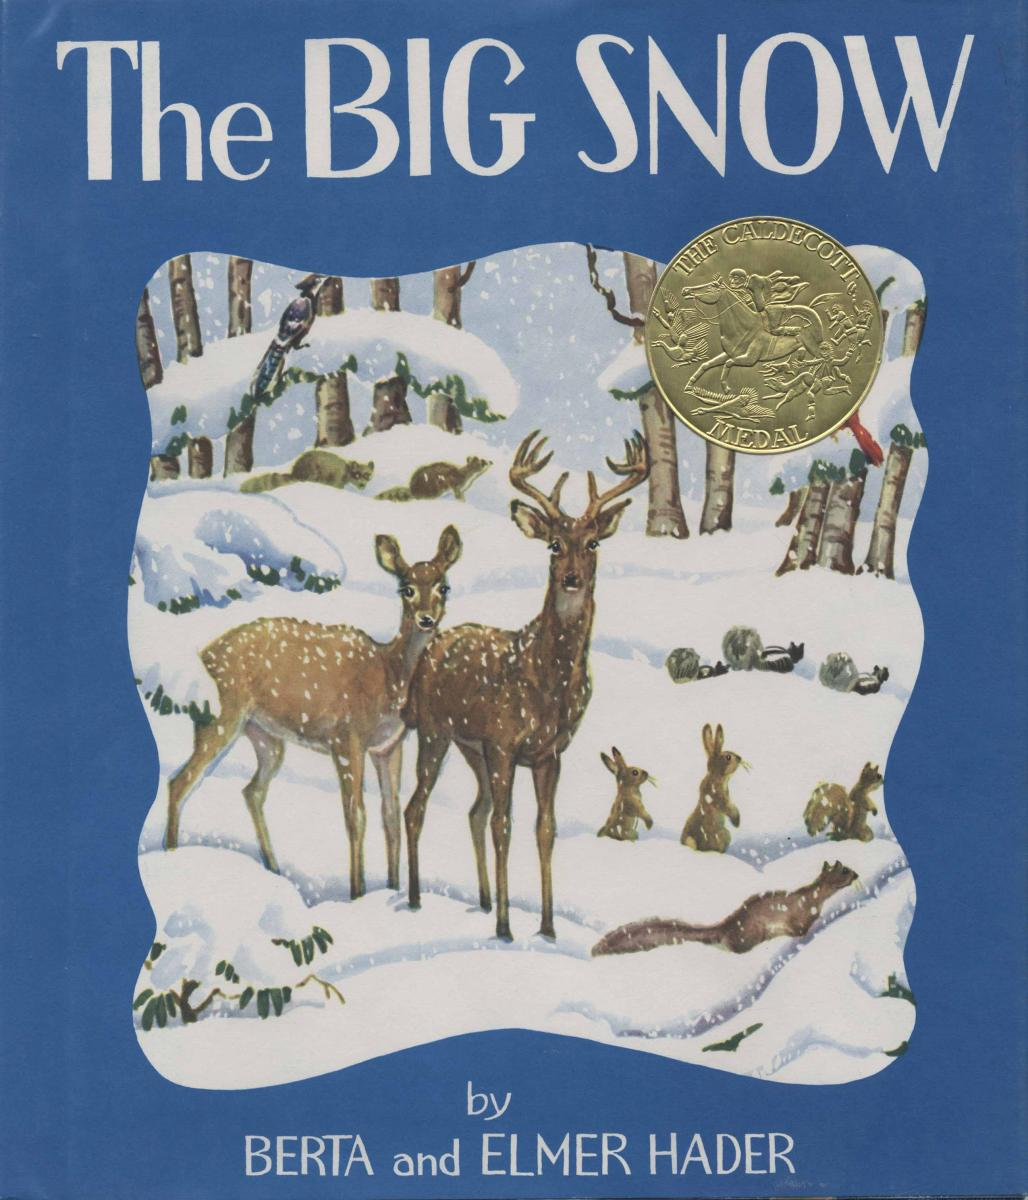 The Big Snow - book cover image